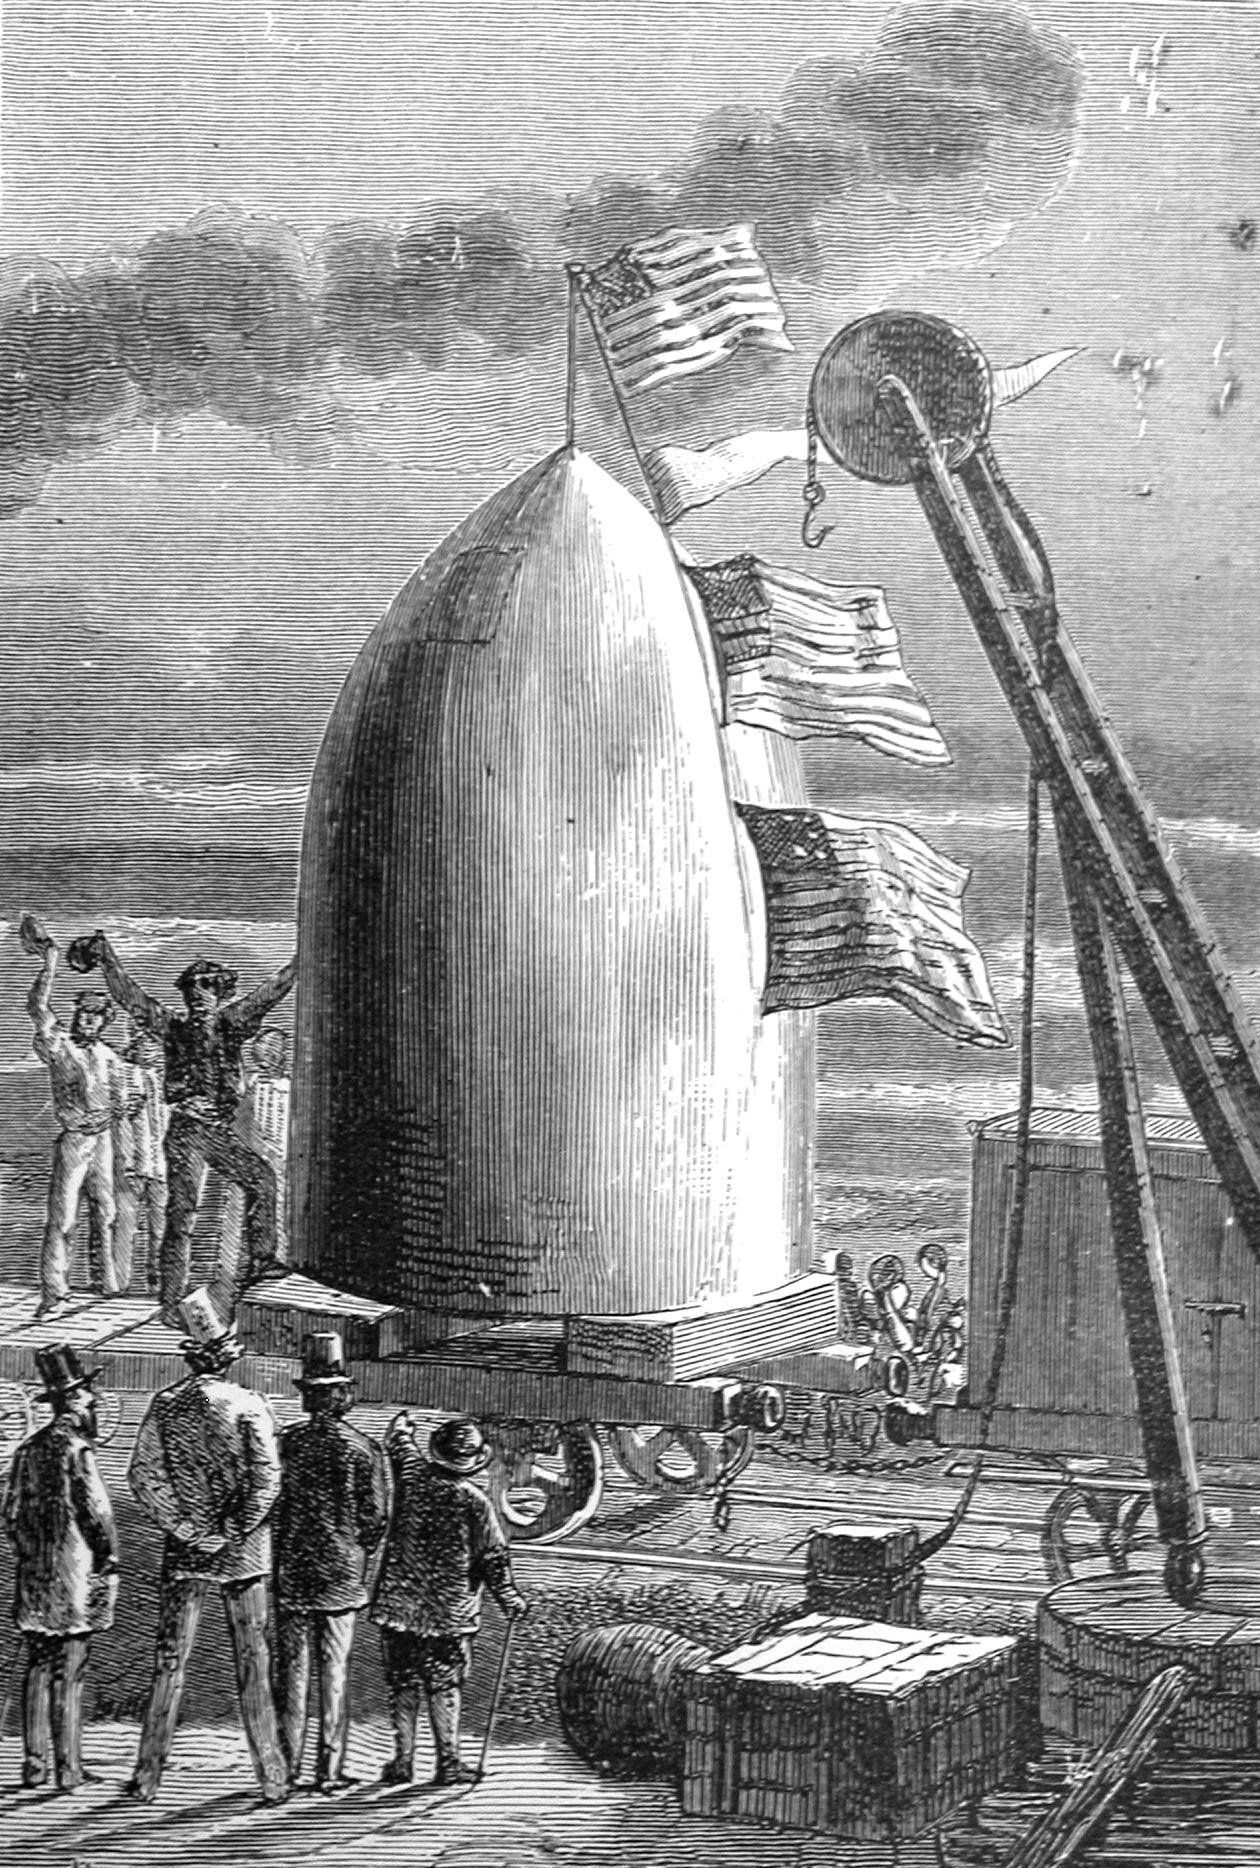 a review of from the earth to the moon by jules verne This article is a plot summary of the science fiction book from the earth to the moon and round the moon by jules verne it explains the known scientific facts.